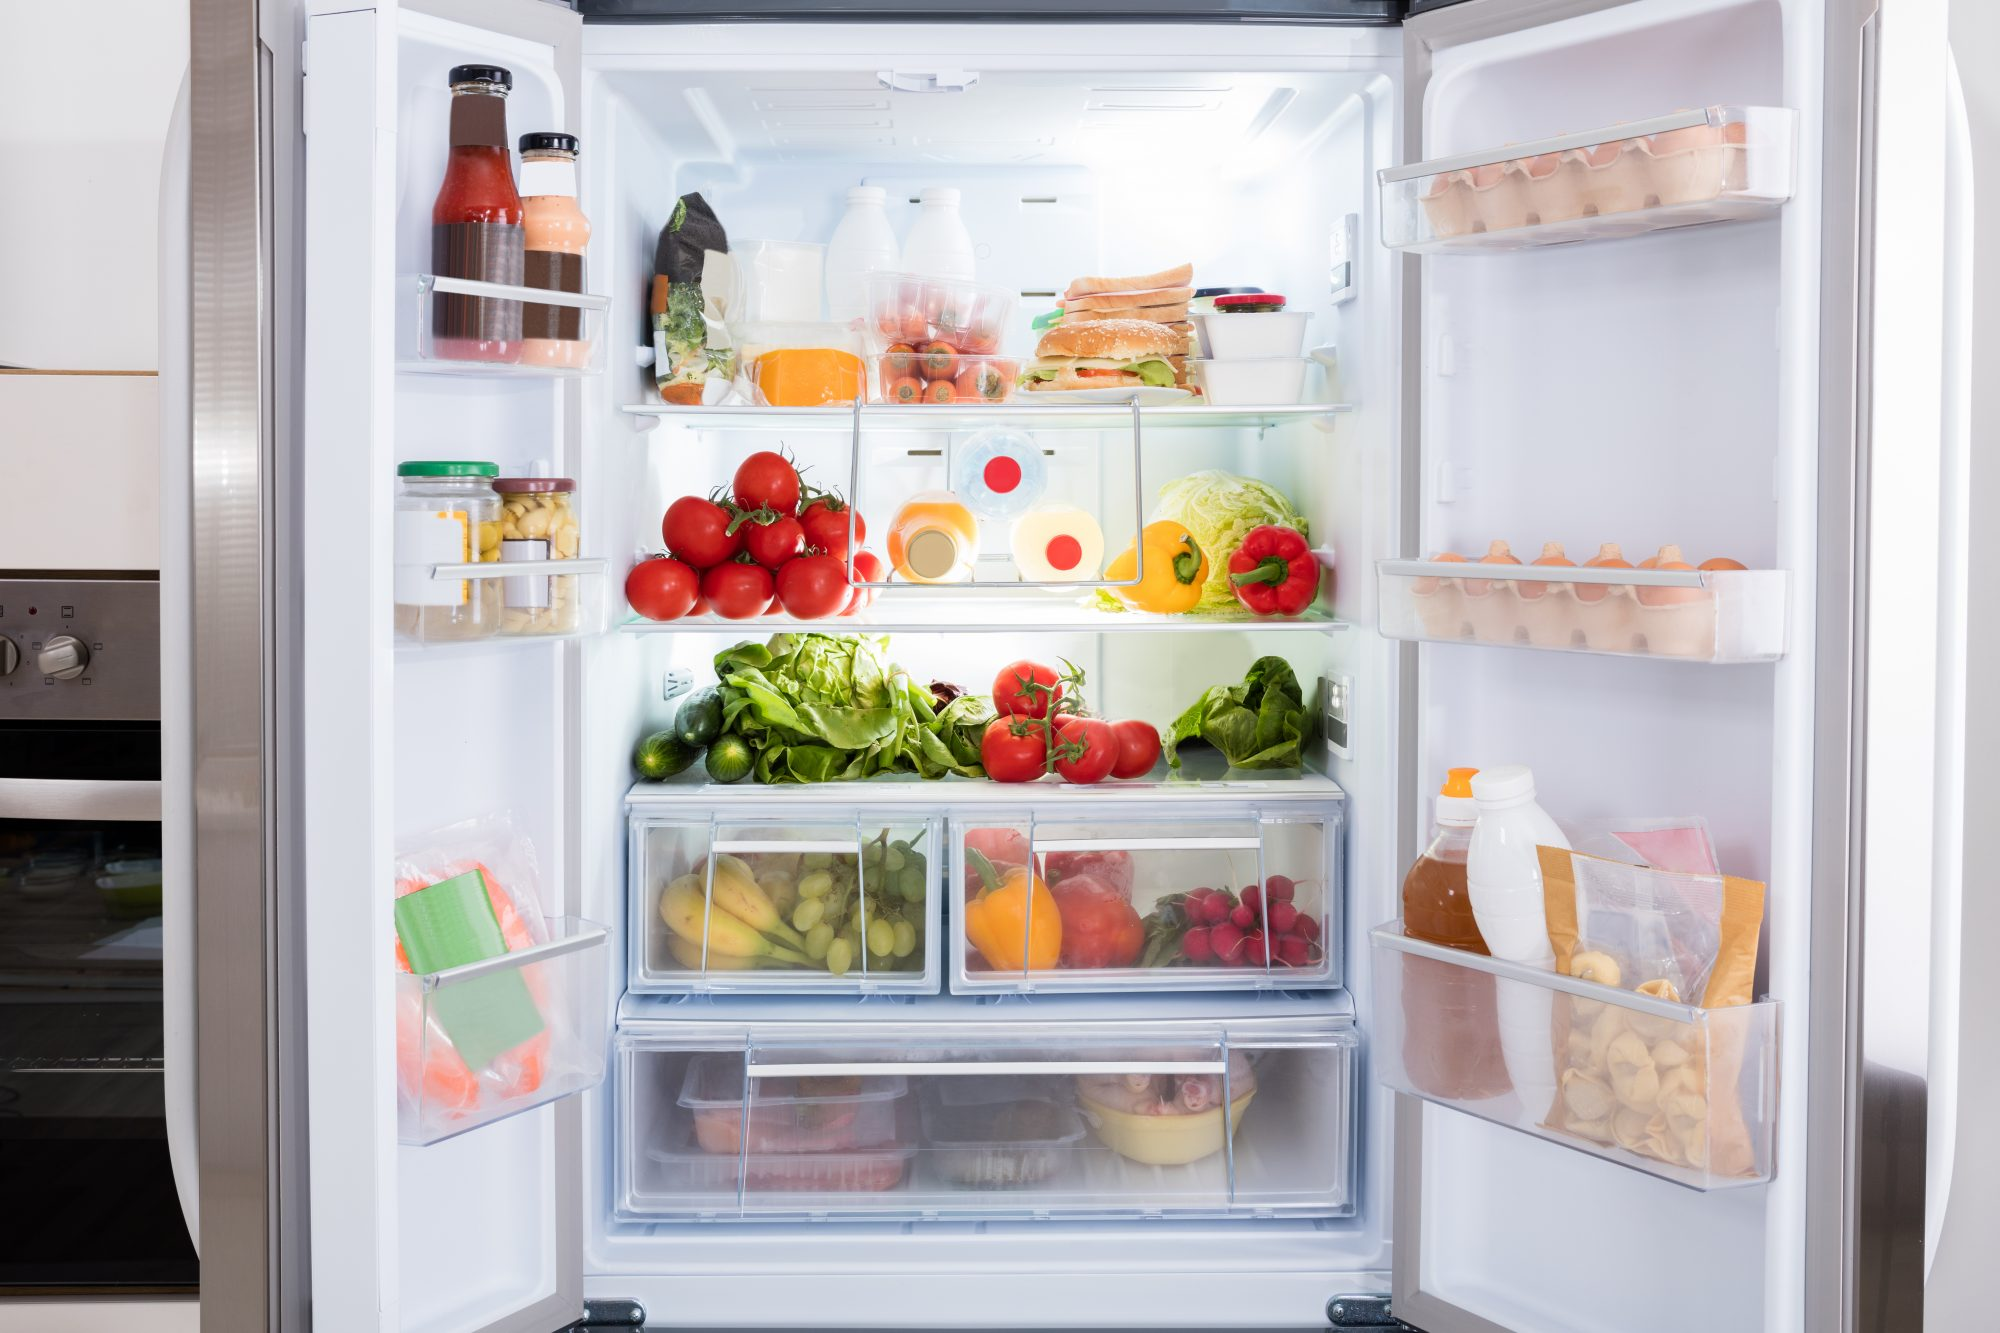 getty-open-fridge-image